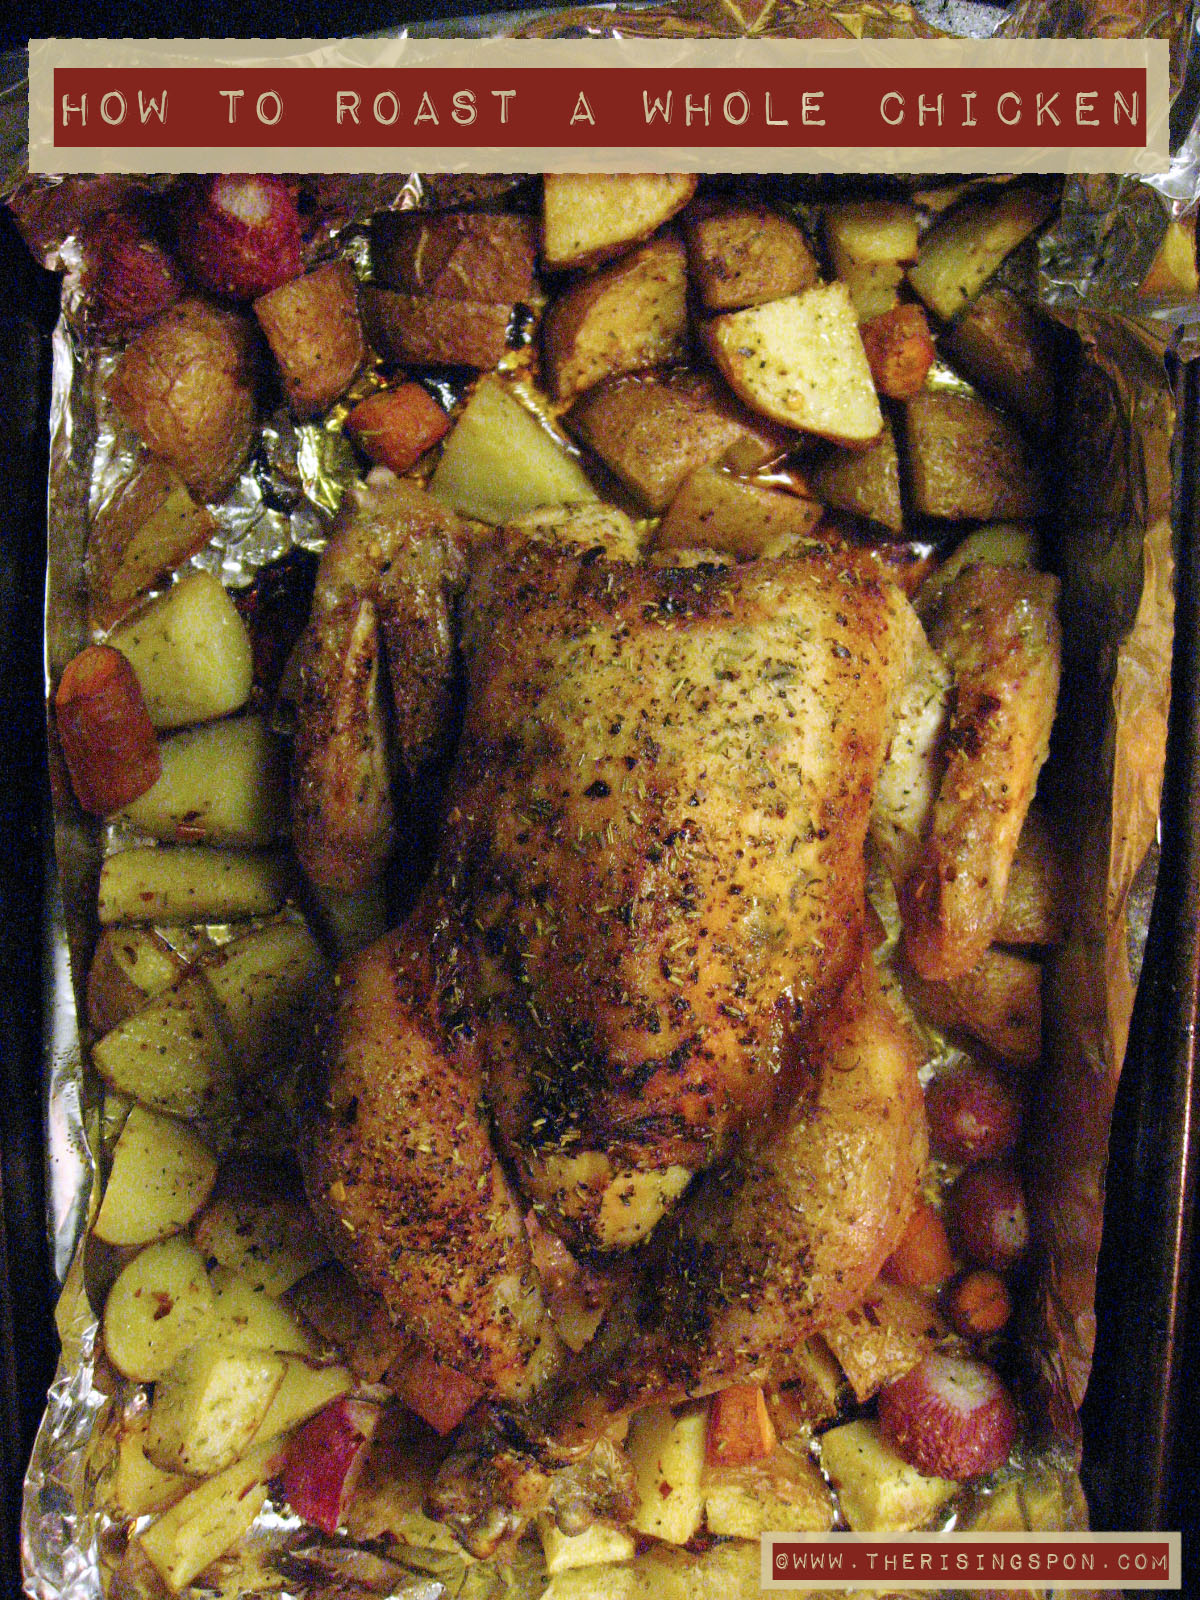 How to roast a whole pastured chicken a real food money saver how to roast a whole pastured chicken a real food money saver forumfinder Image collections